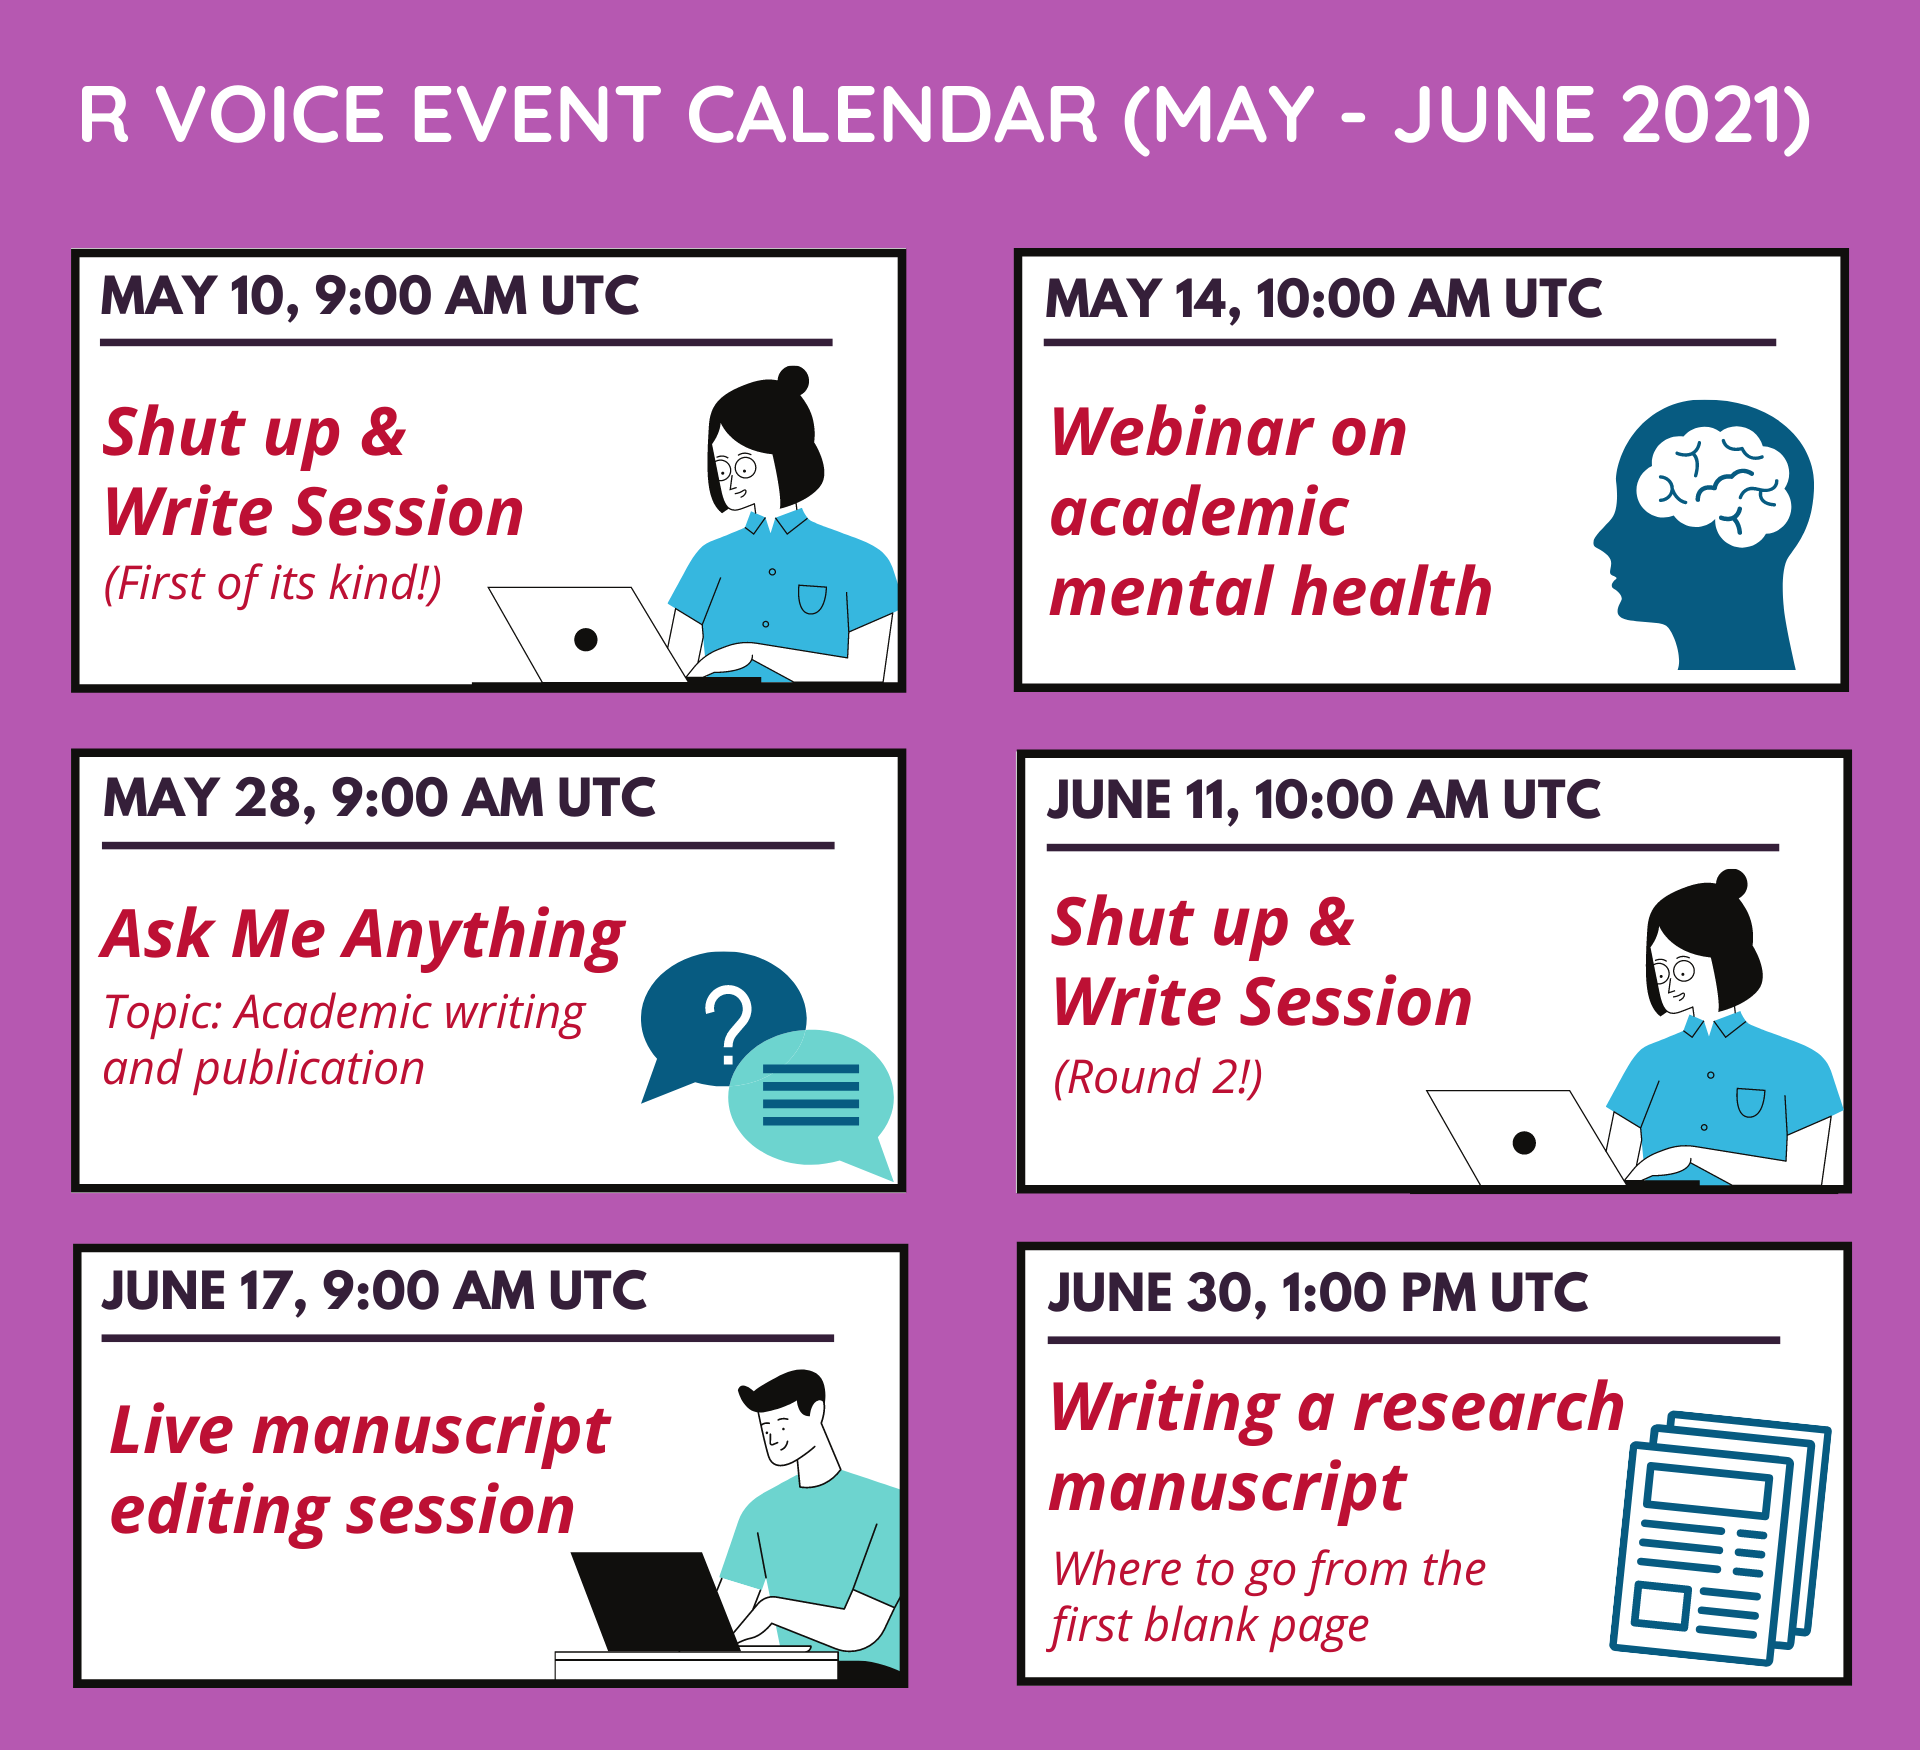 R Voice Events Calendar (May to June 2021).png